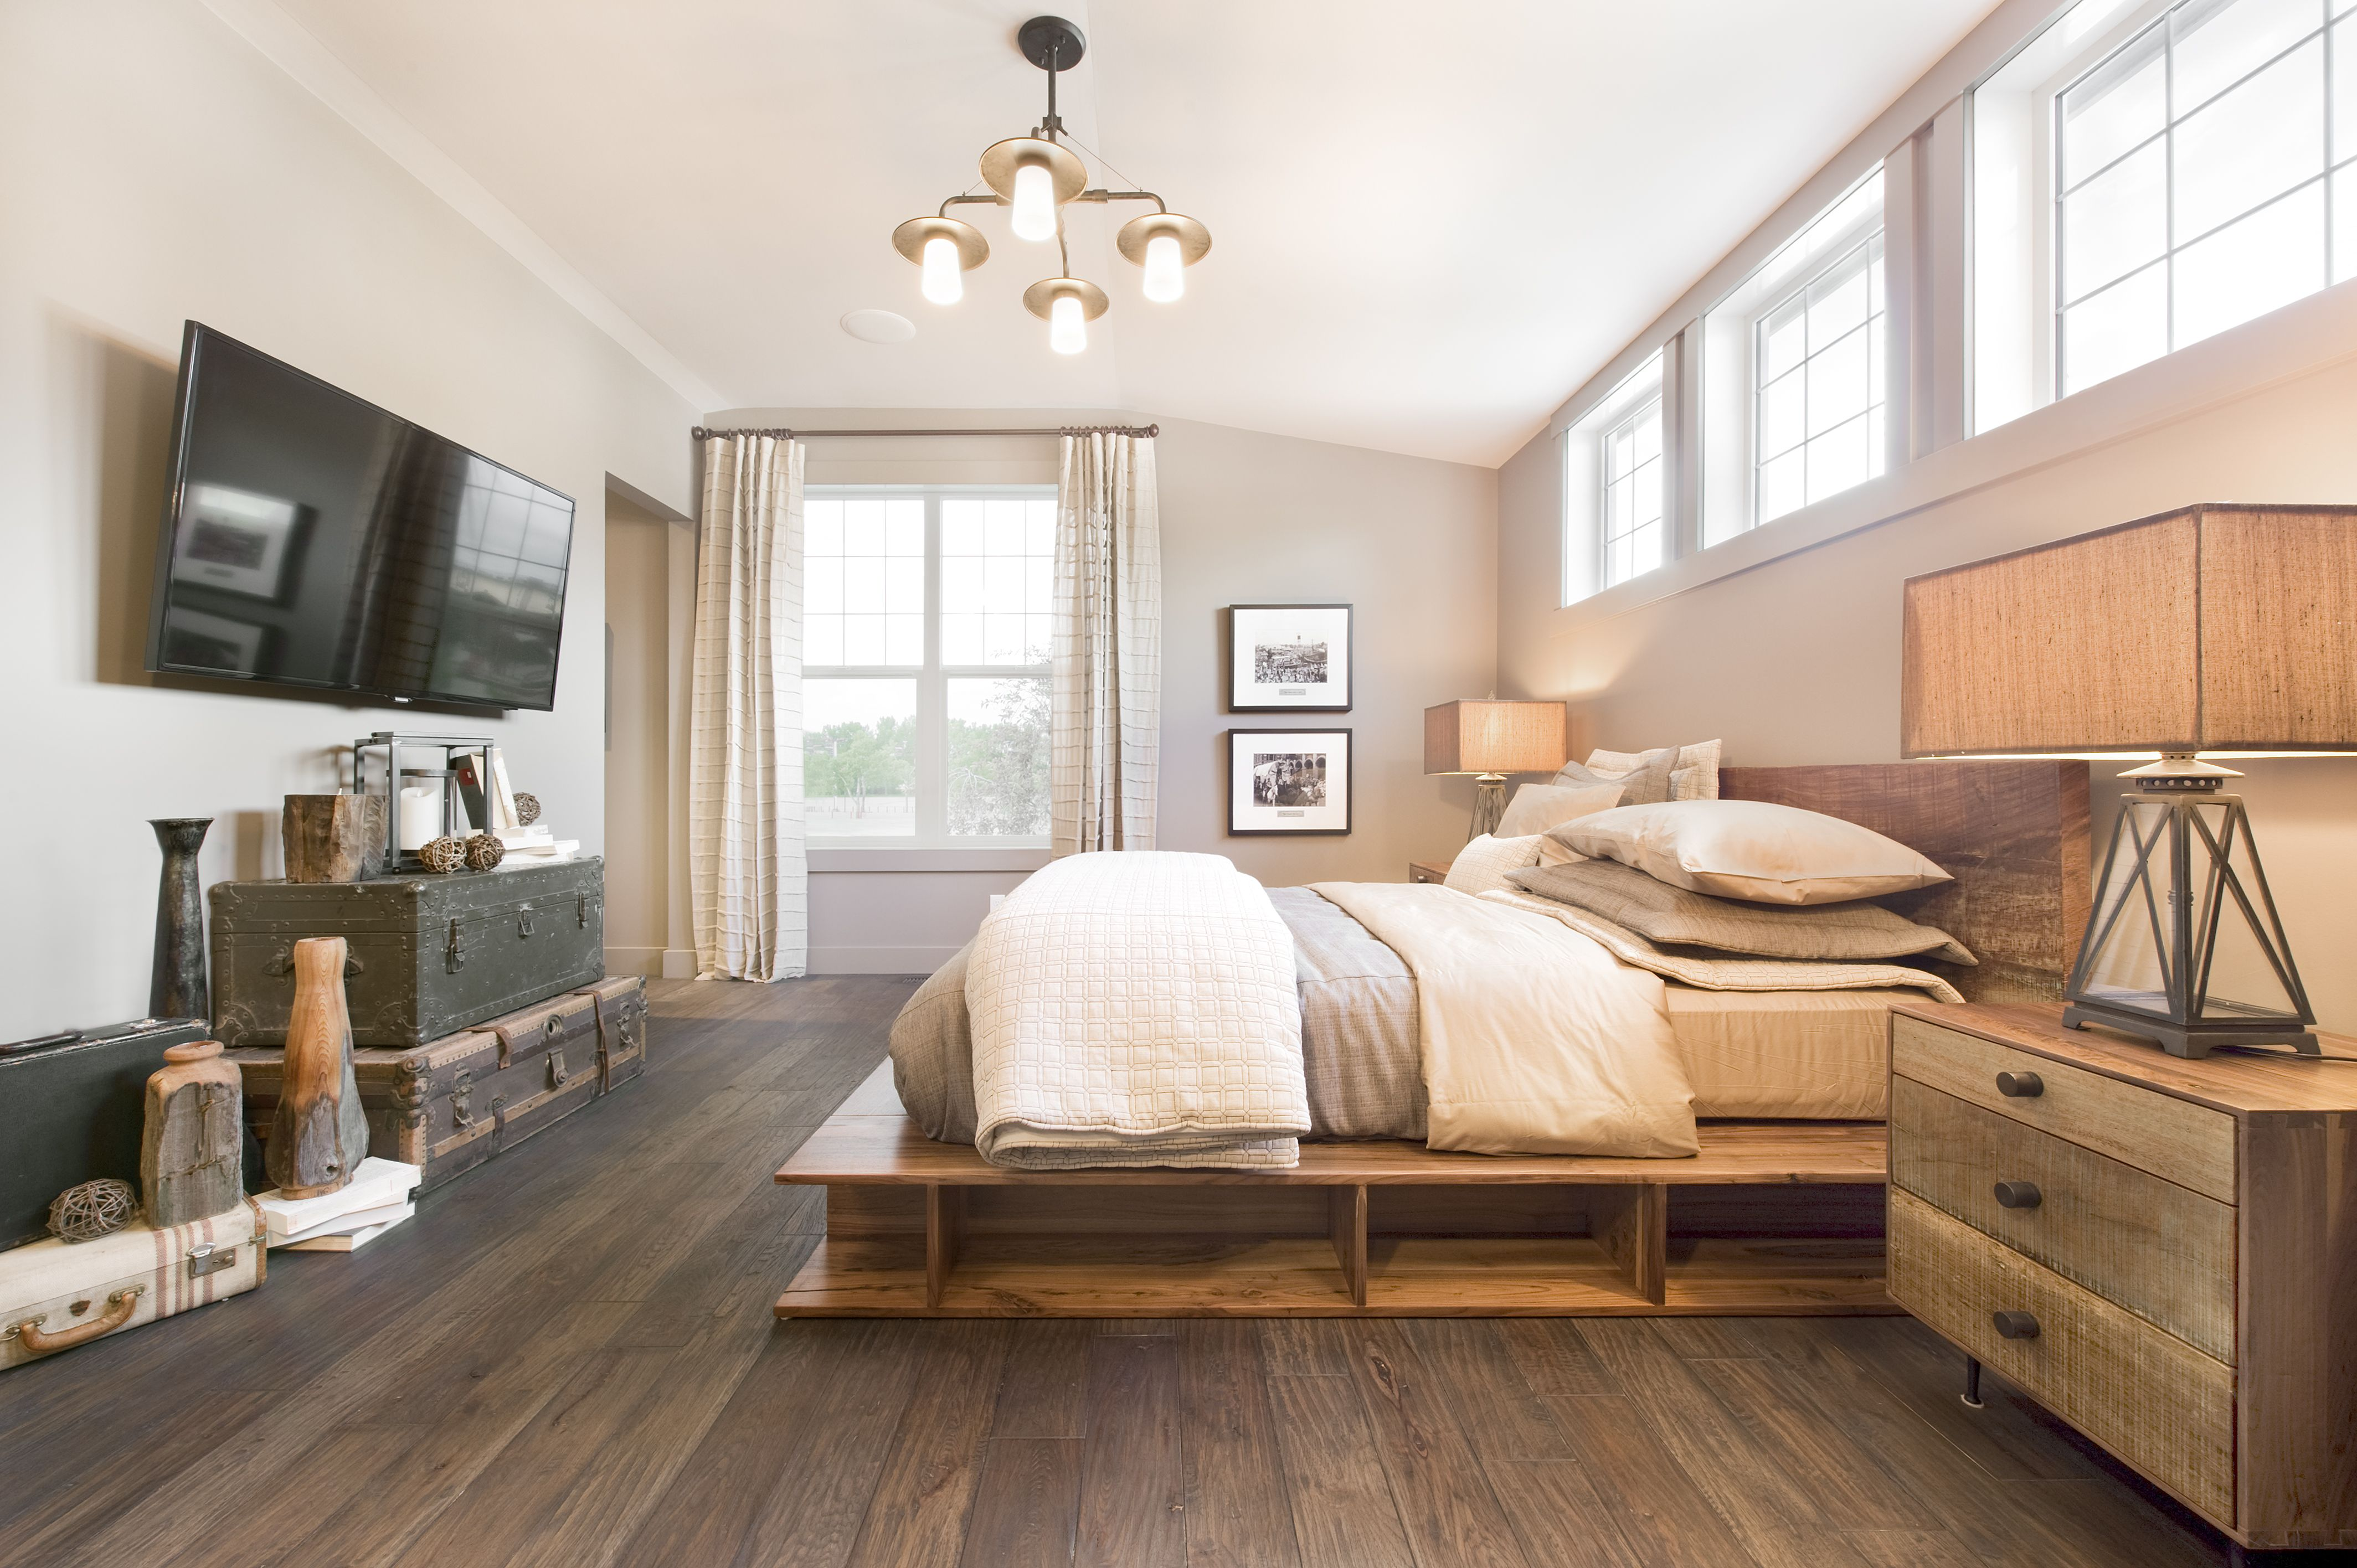 Master bedroom hardwood floors  The floors are reclaimed Amish oak with an oiled finish I love this